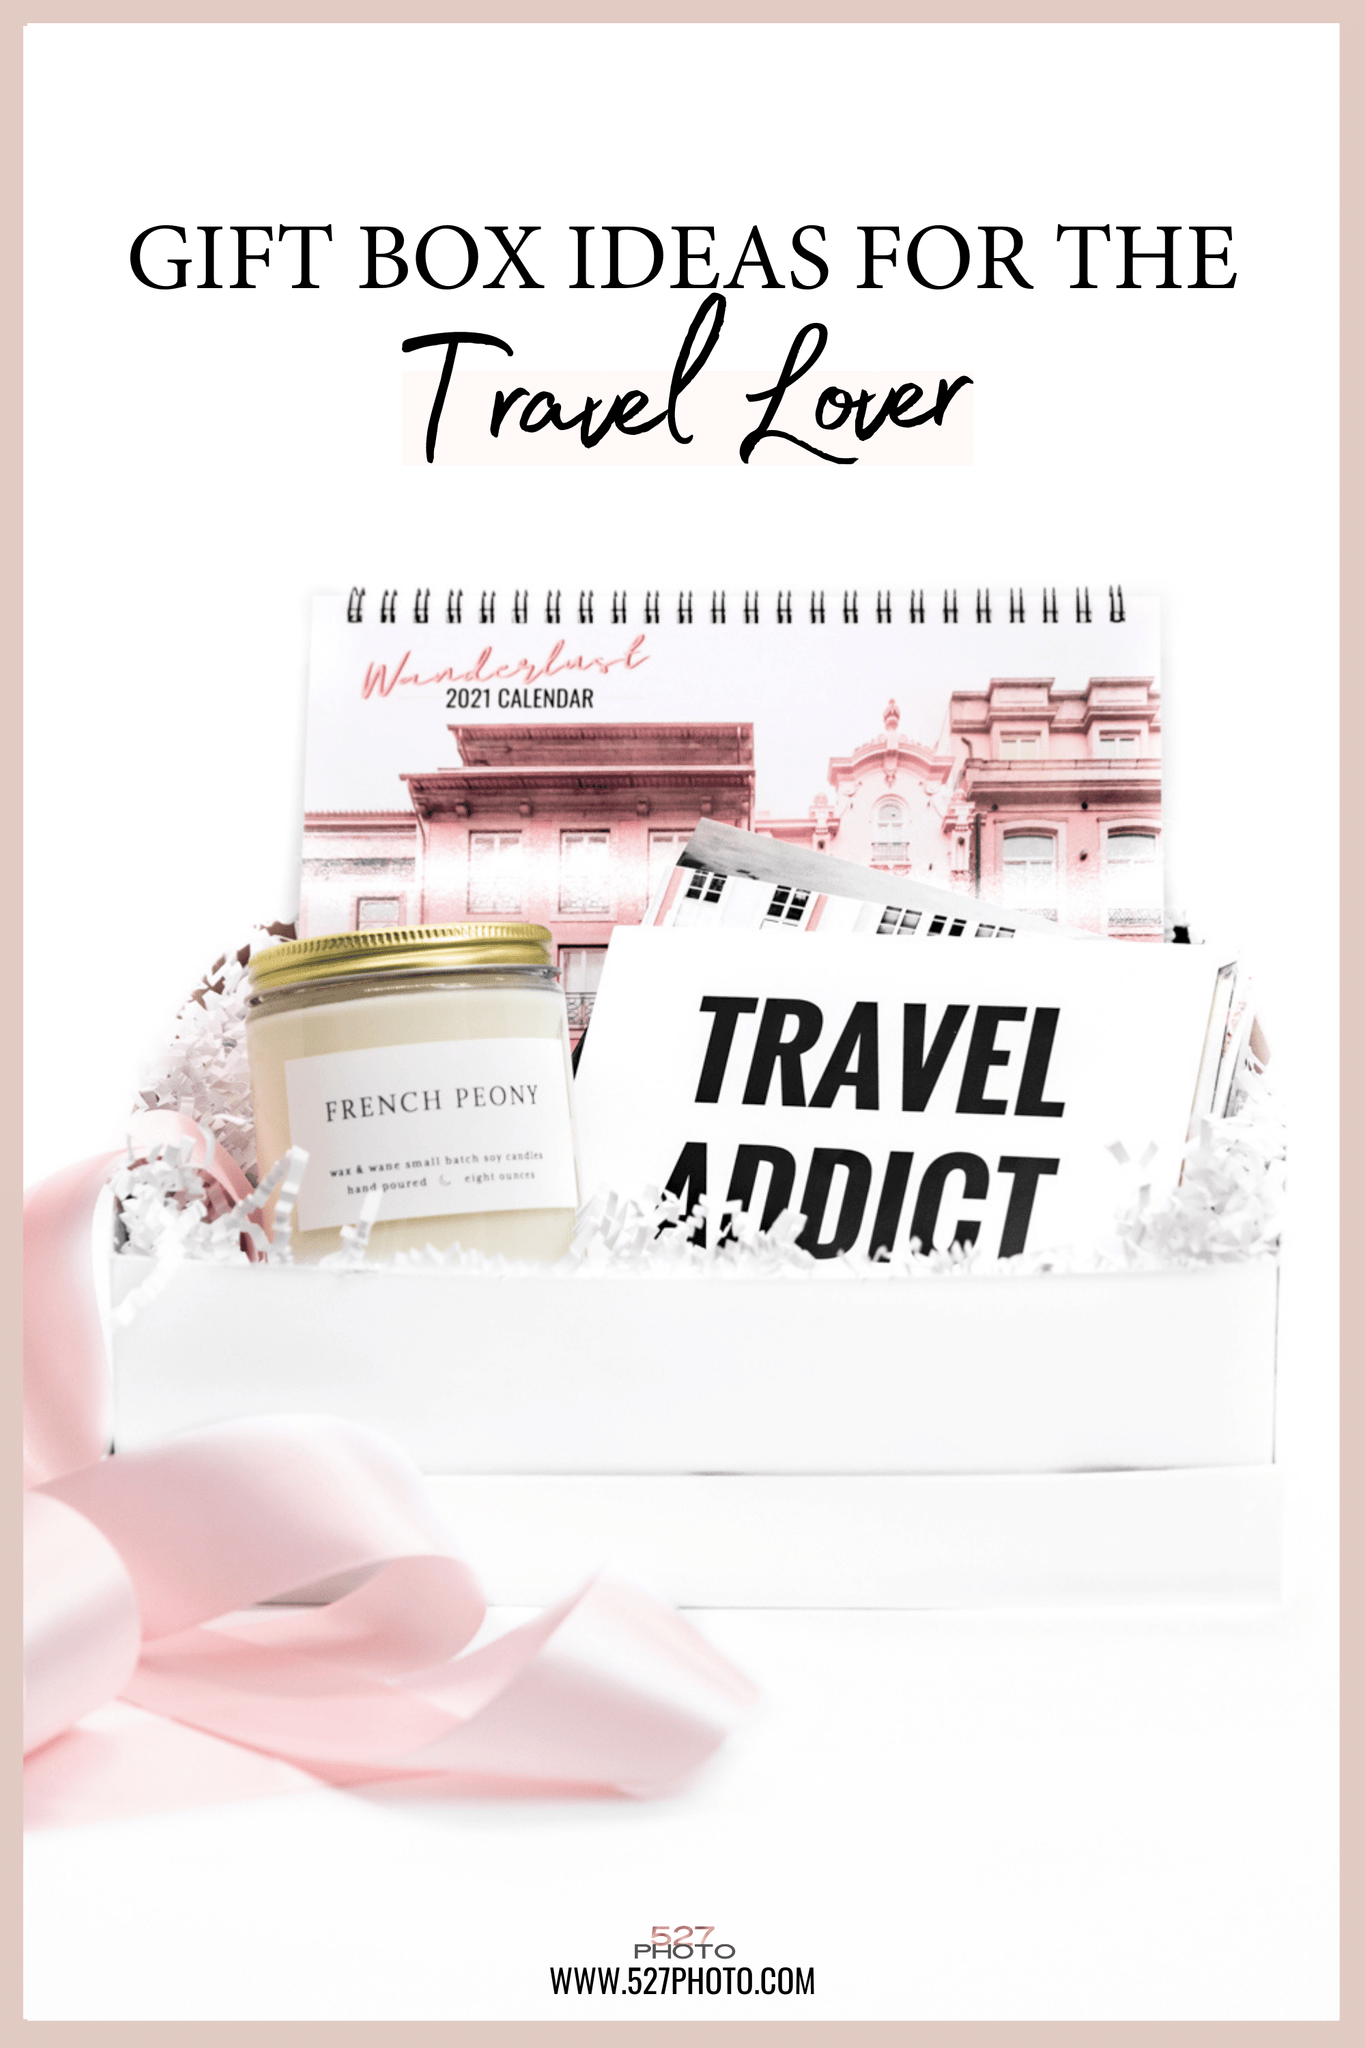 Gift box ideas for the travel lover